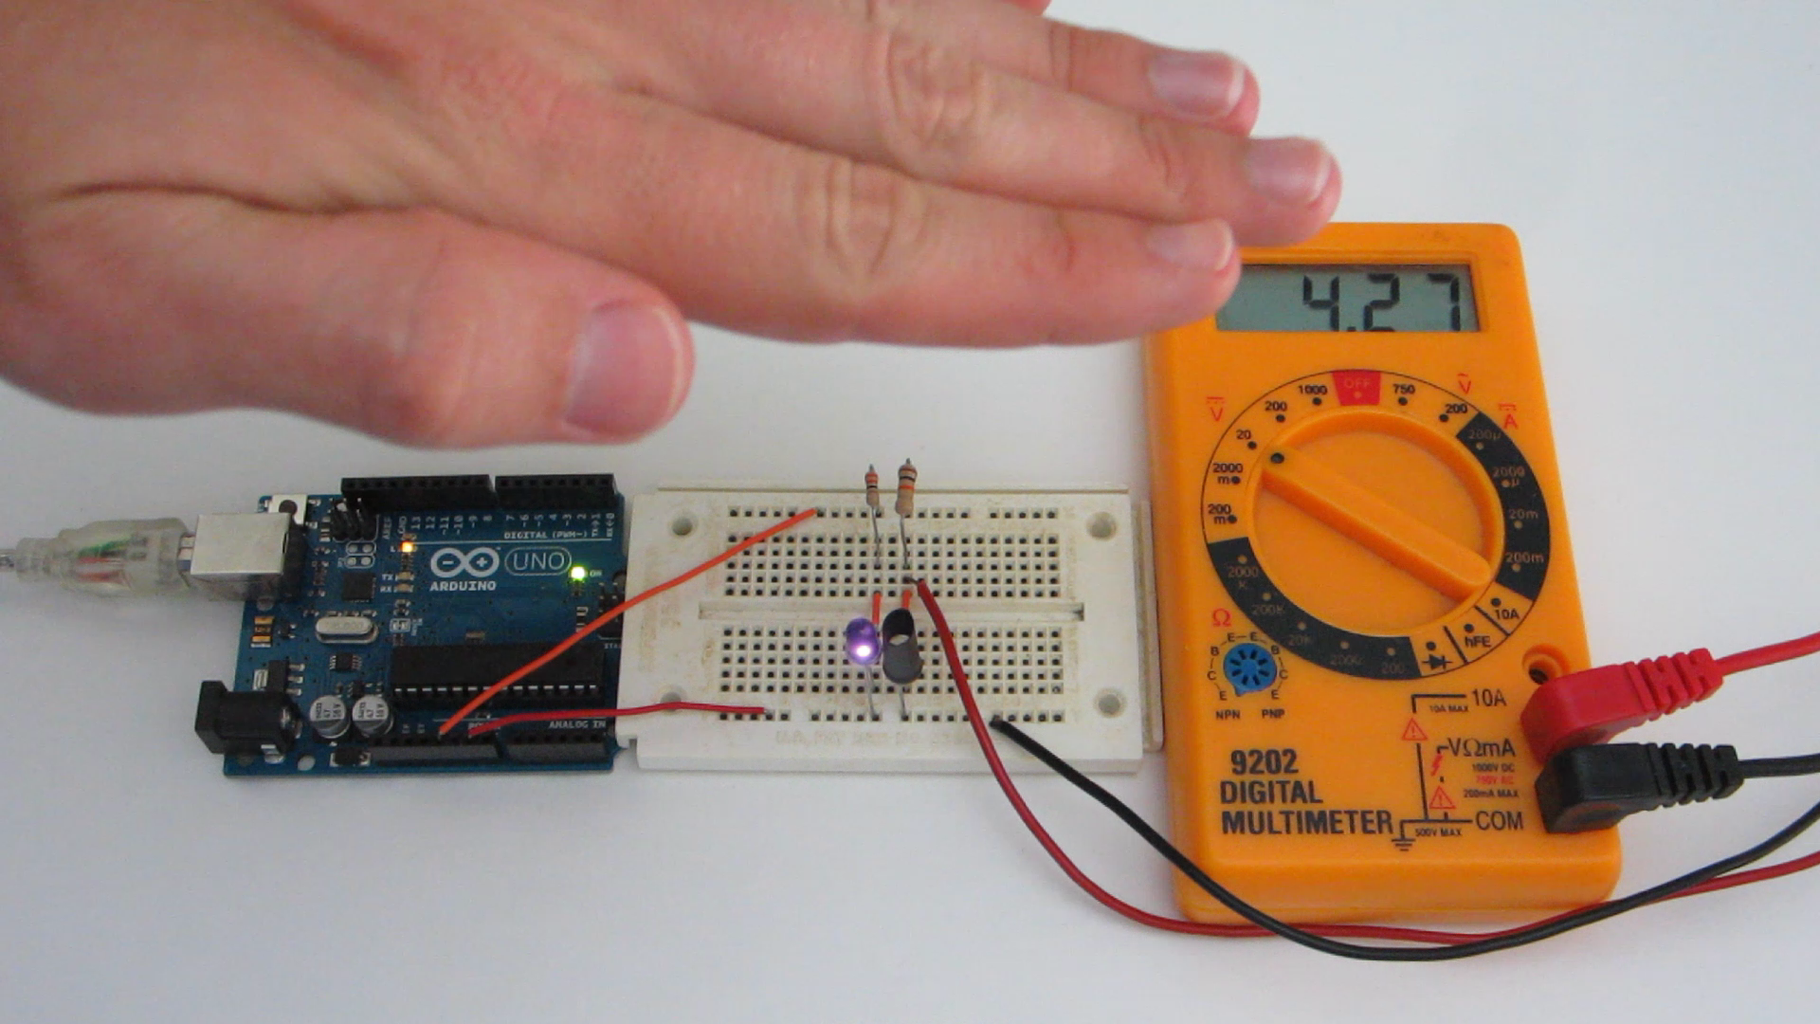 How an Infrared Proximity Sensor Works